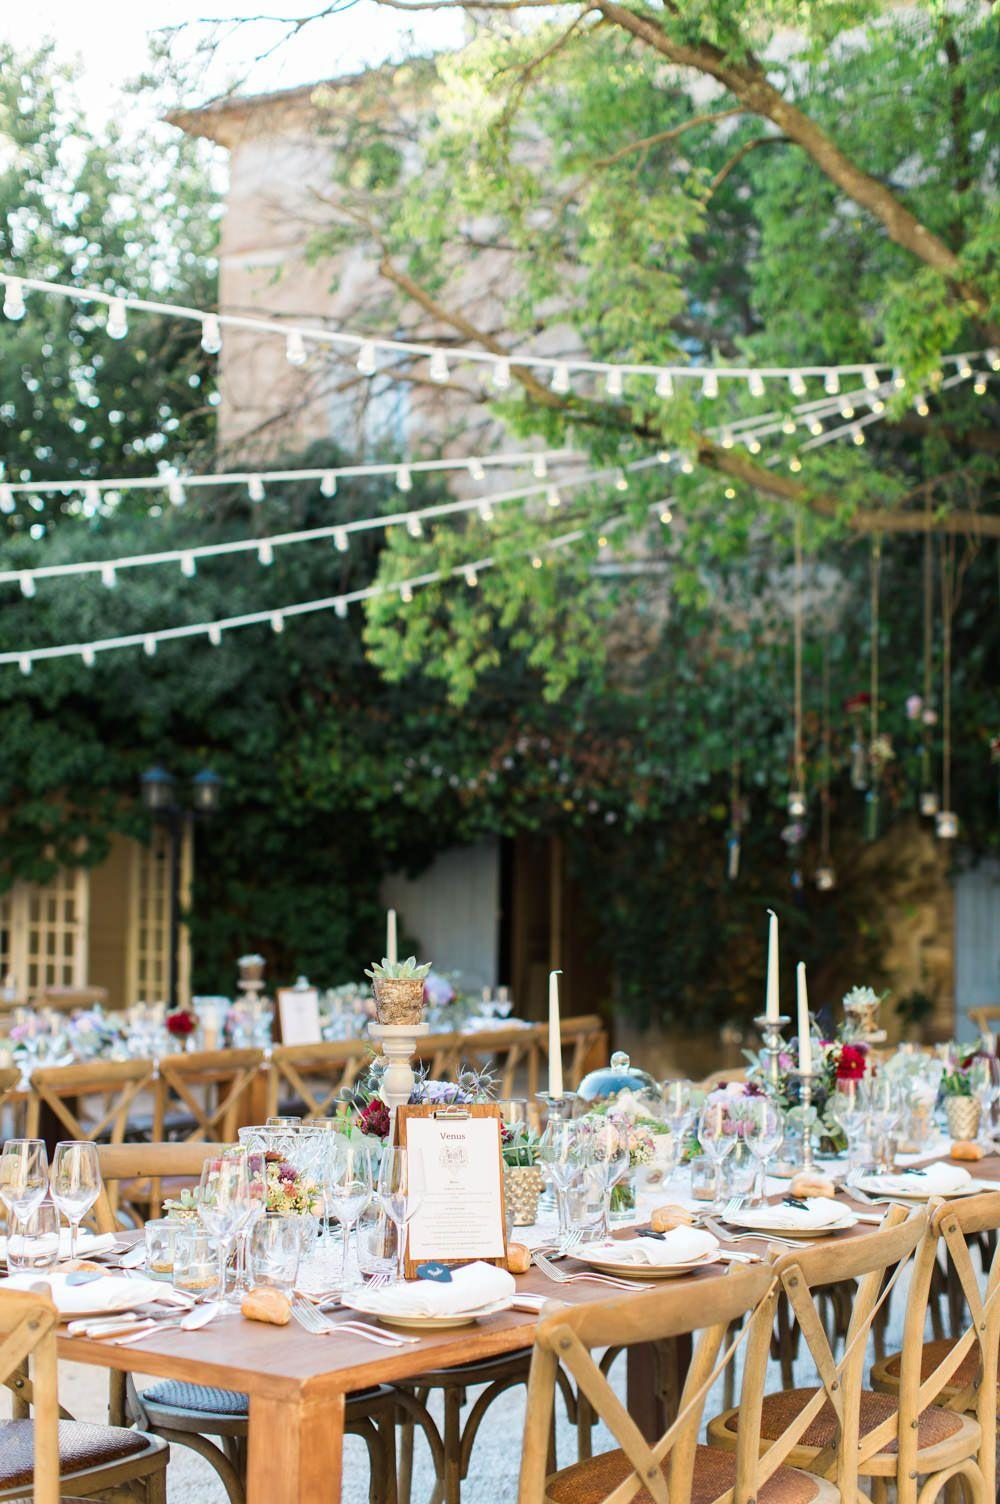 Simple Wedding Decorating: 95 Smashing Ideas to Be Inspired 28